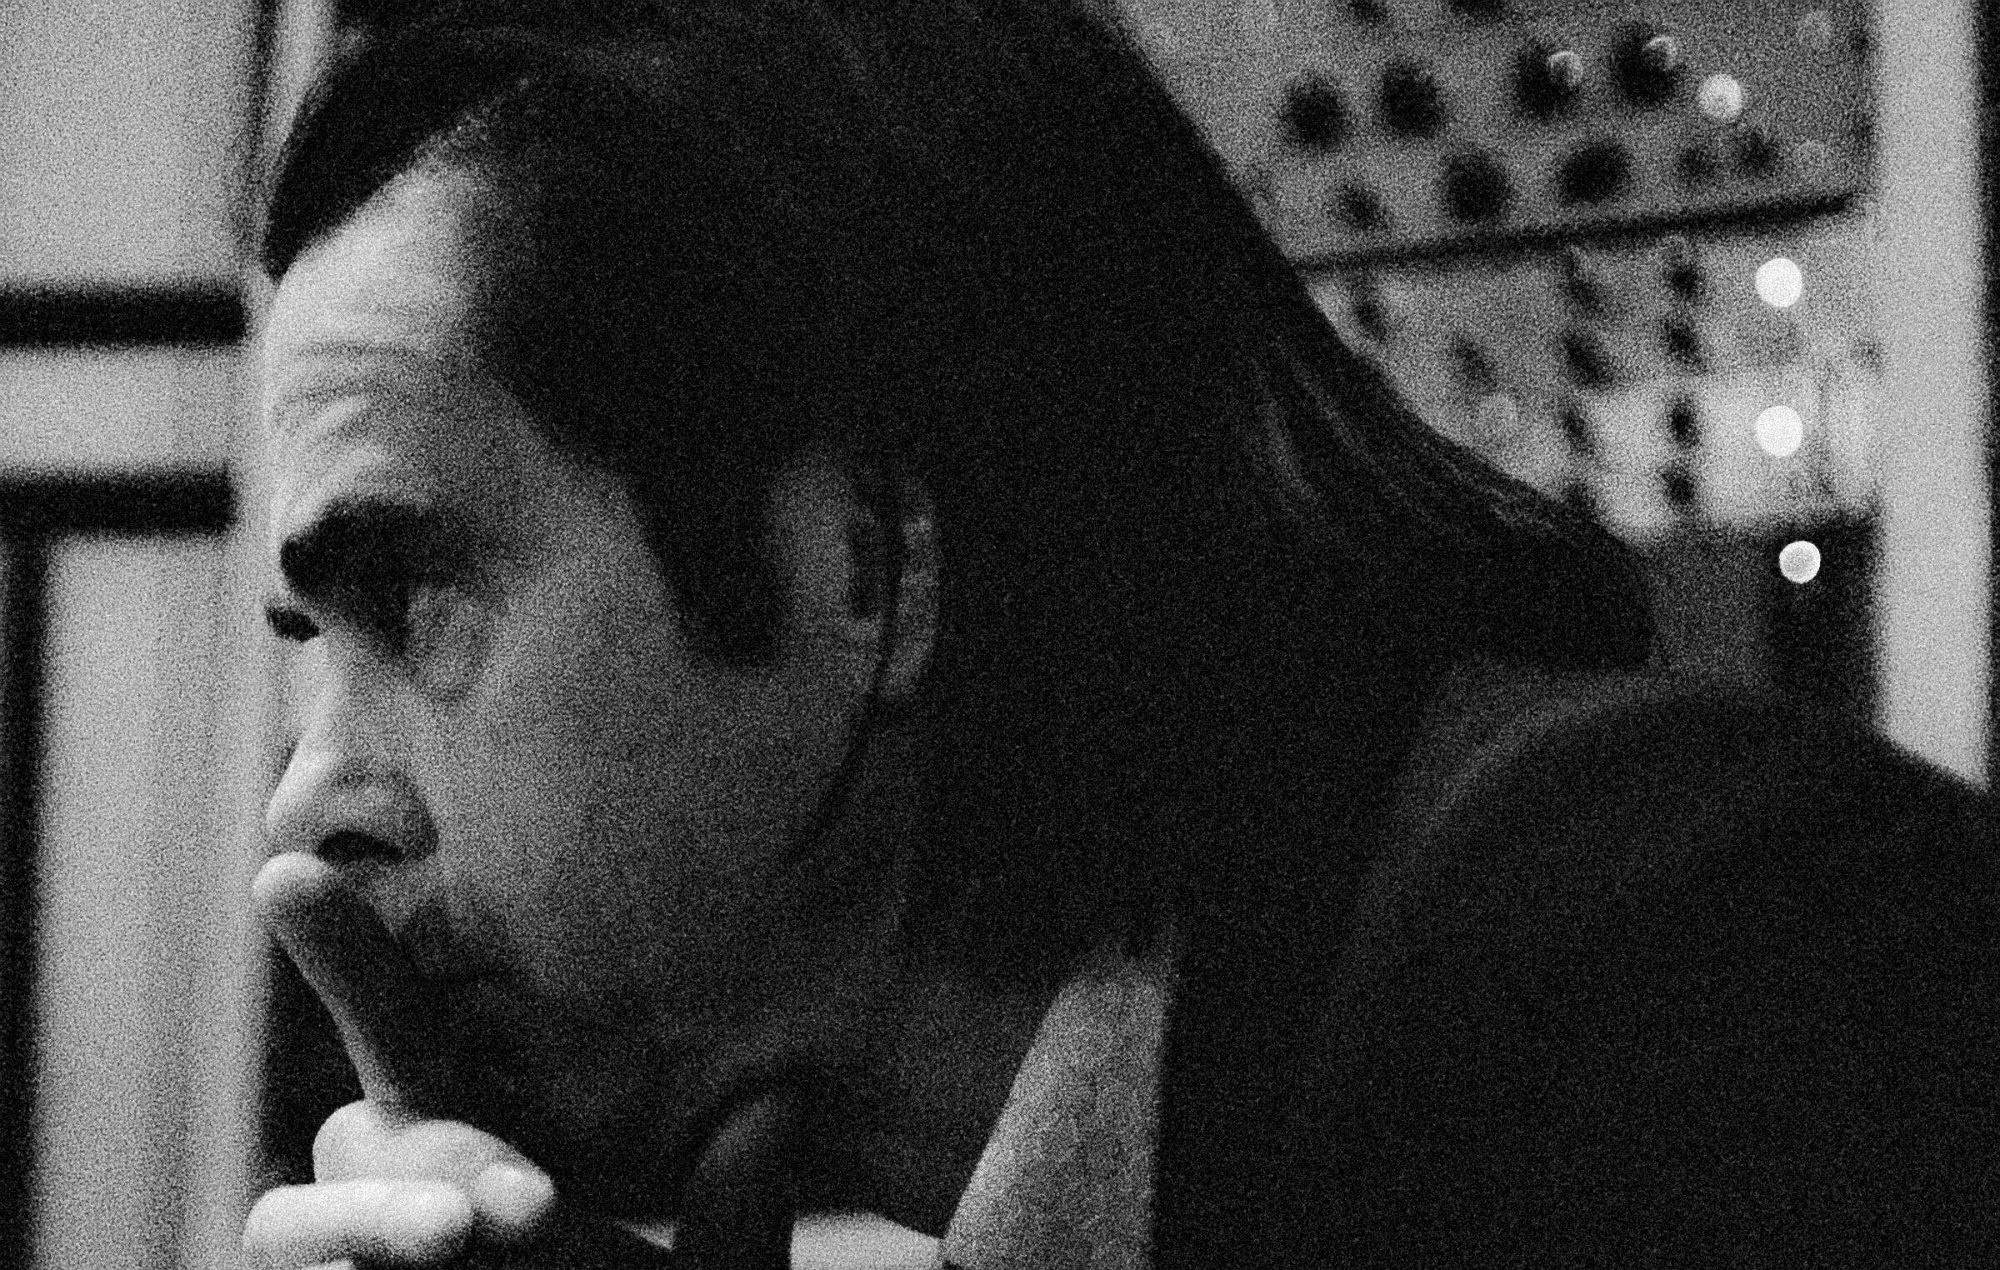 Nick Cave and the Bad Seeds – 'Ghosteen' review: a beautiful account of harrowing grief